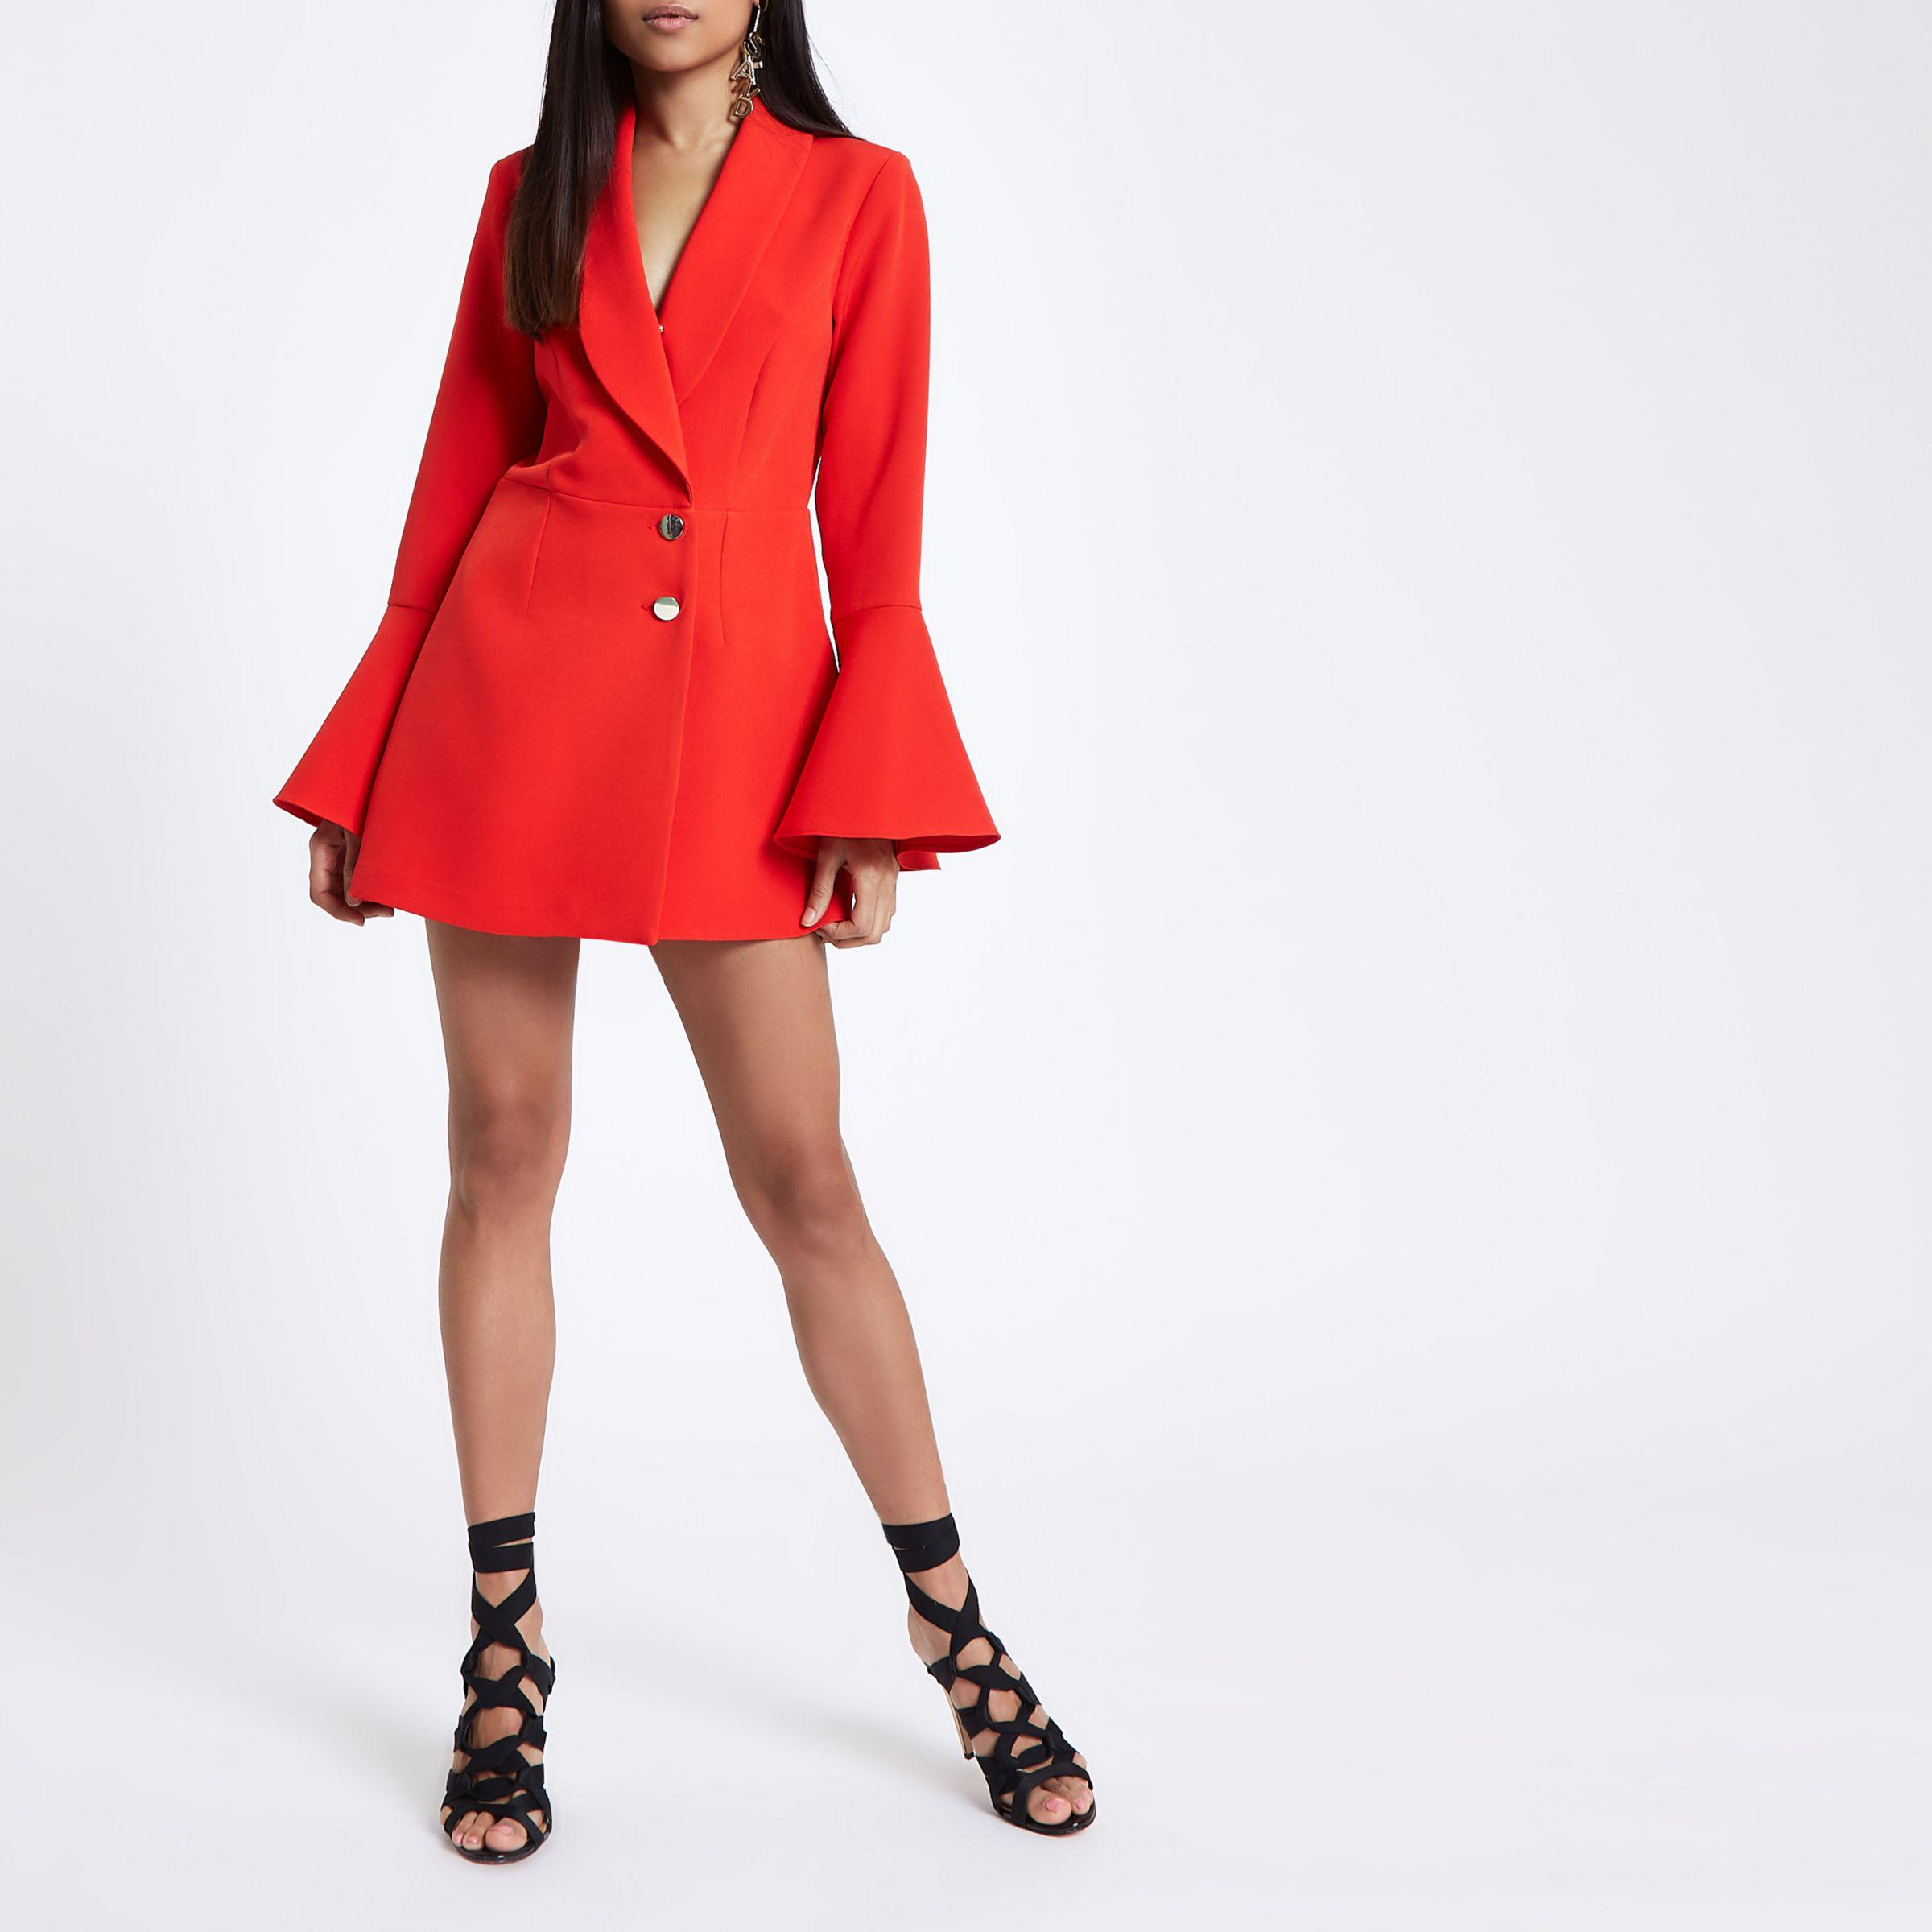 1283a1544b3 River Island Petite Red Tux Padded Shoulder Playsuit in Red - Lyst